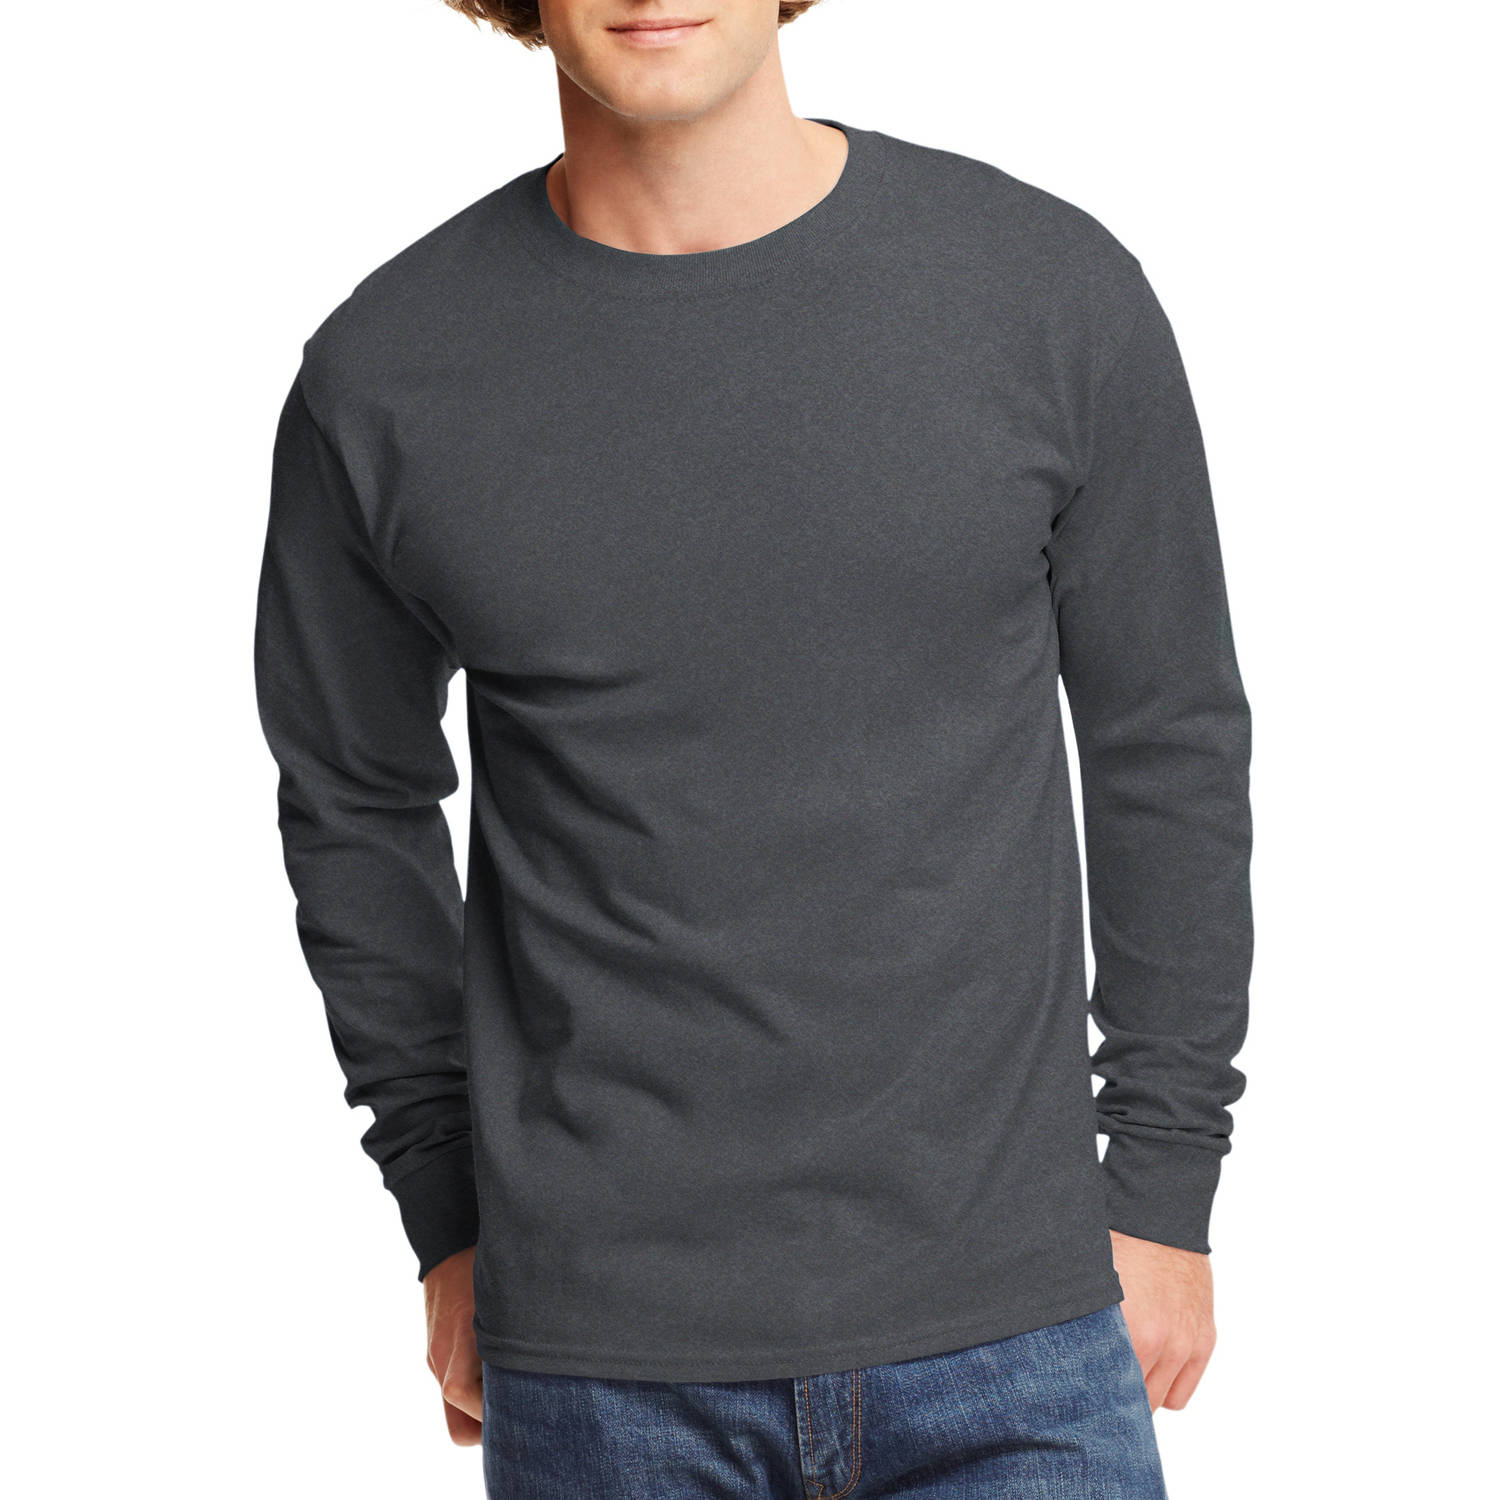 Hanes Mens Tagless Cotton Crew Neck Long-Sleeve Tshirt - Walmart.com